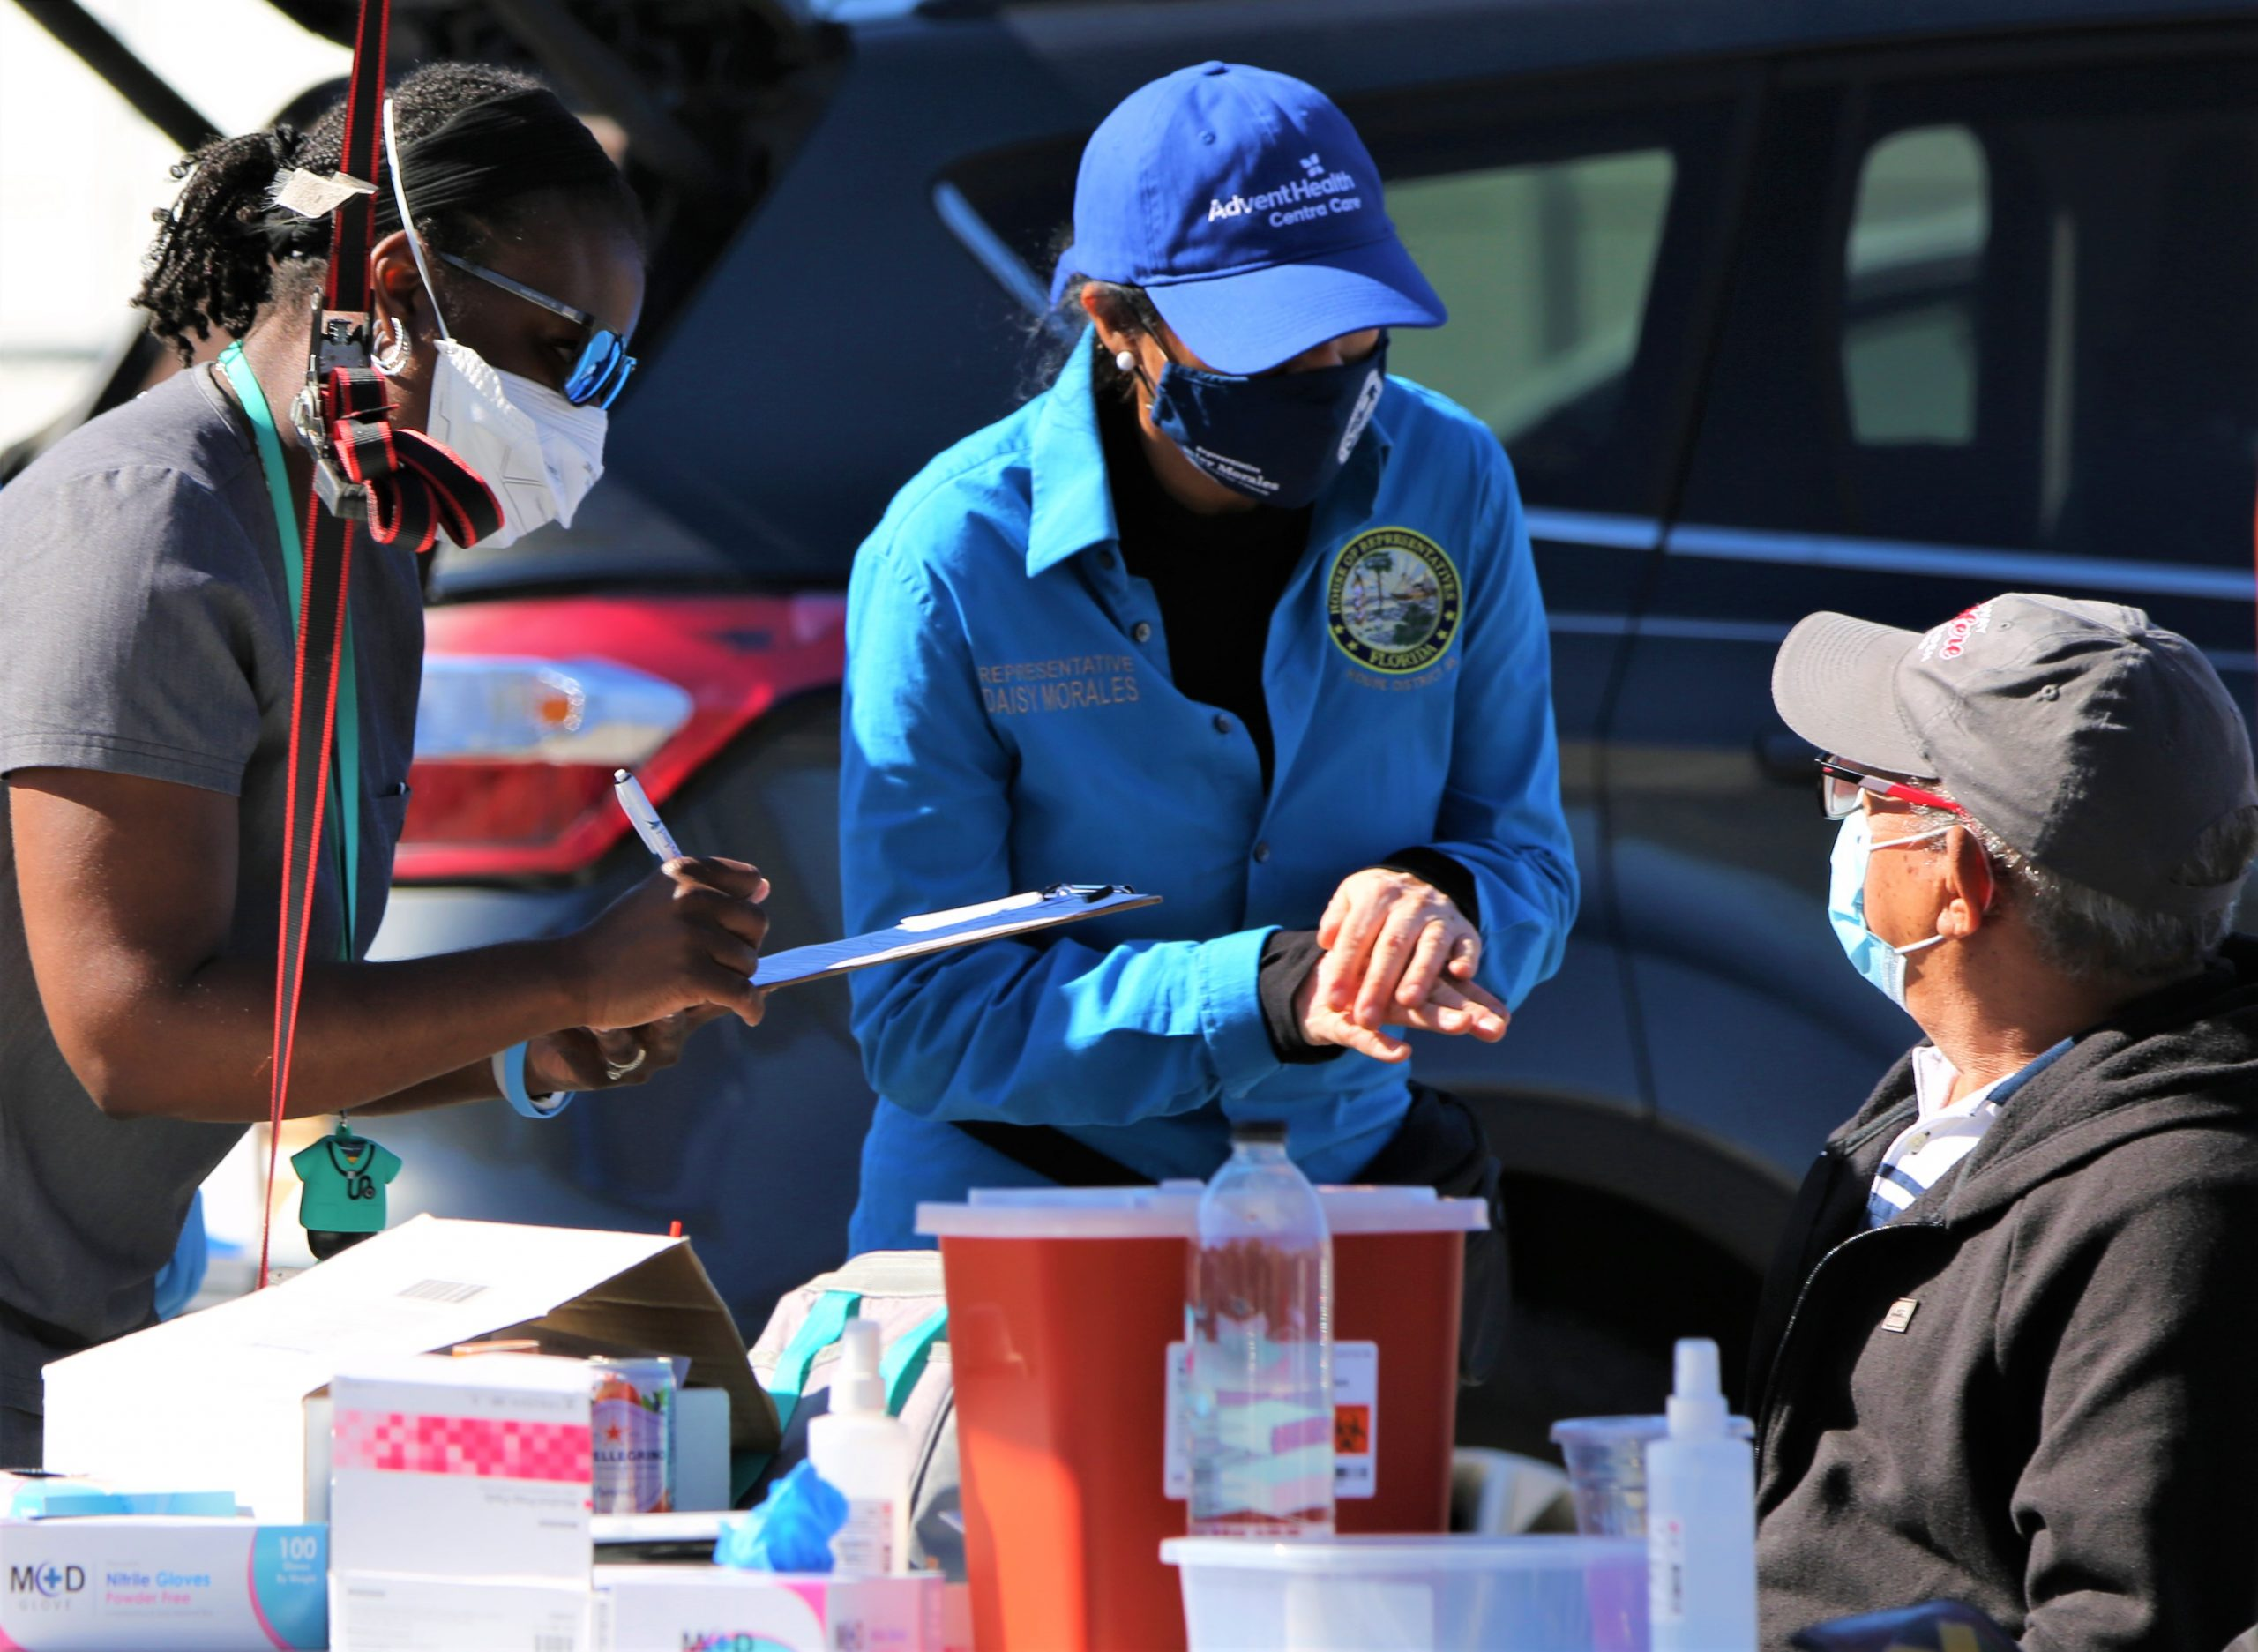 State Representative Daisy Morales assists frontline health care workers with Spanish speaking residents at a District 48 COVID-19 vaccination site in central Orlando, Saturday, February 20, 2021. (Photo by Florida National News / J Willie David, III)